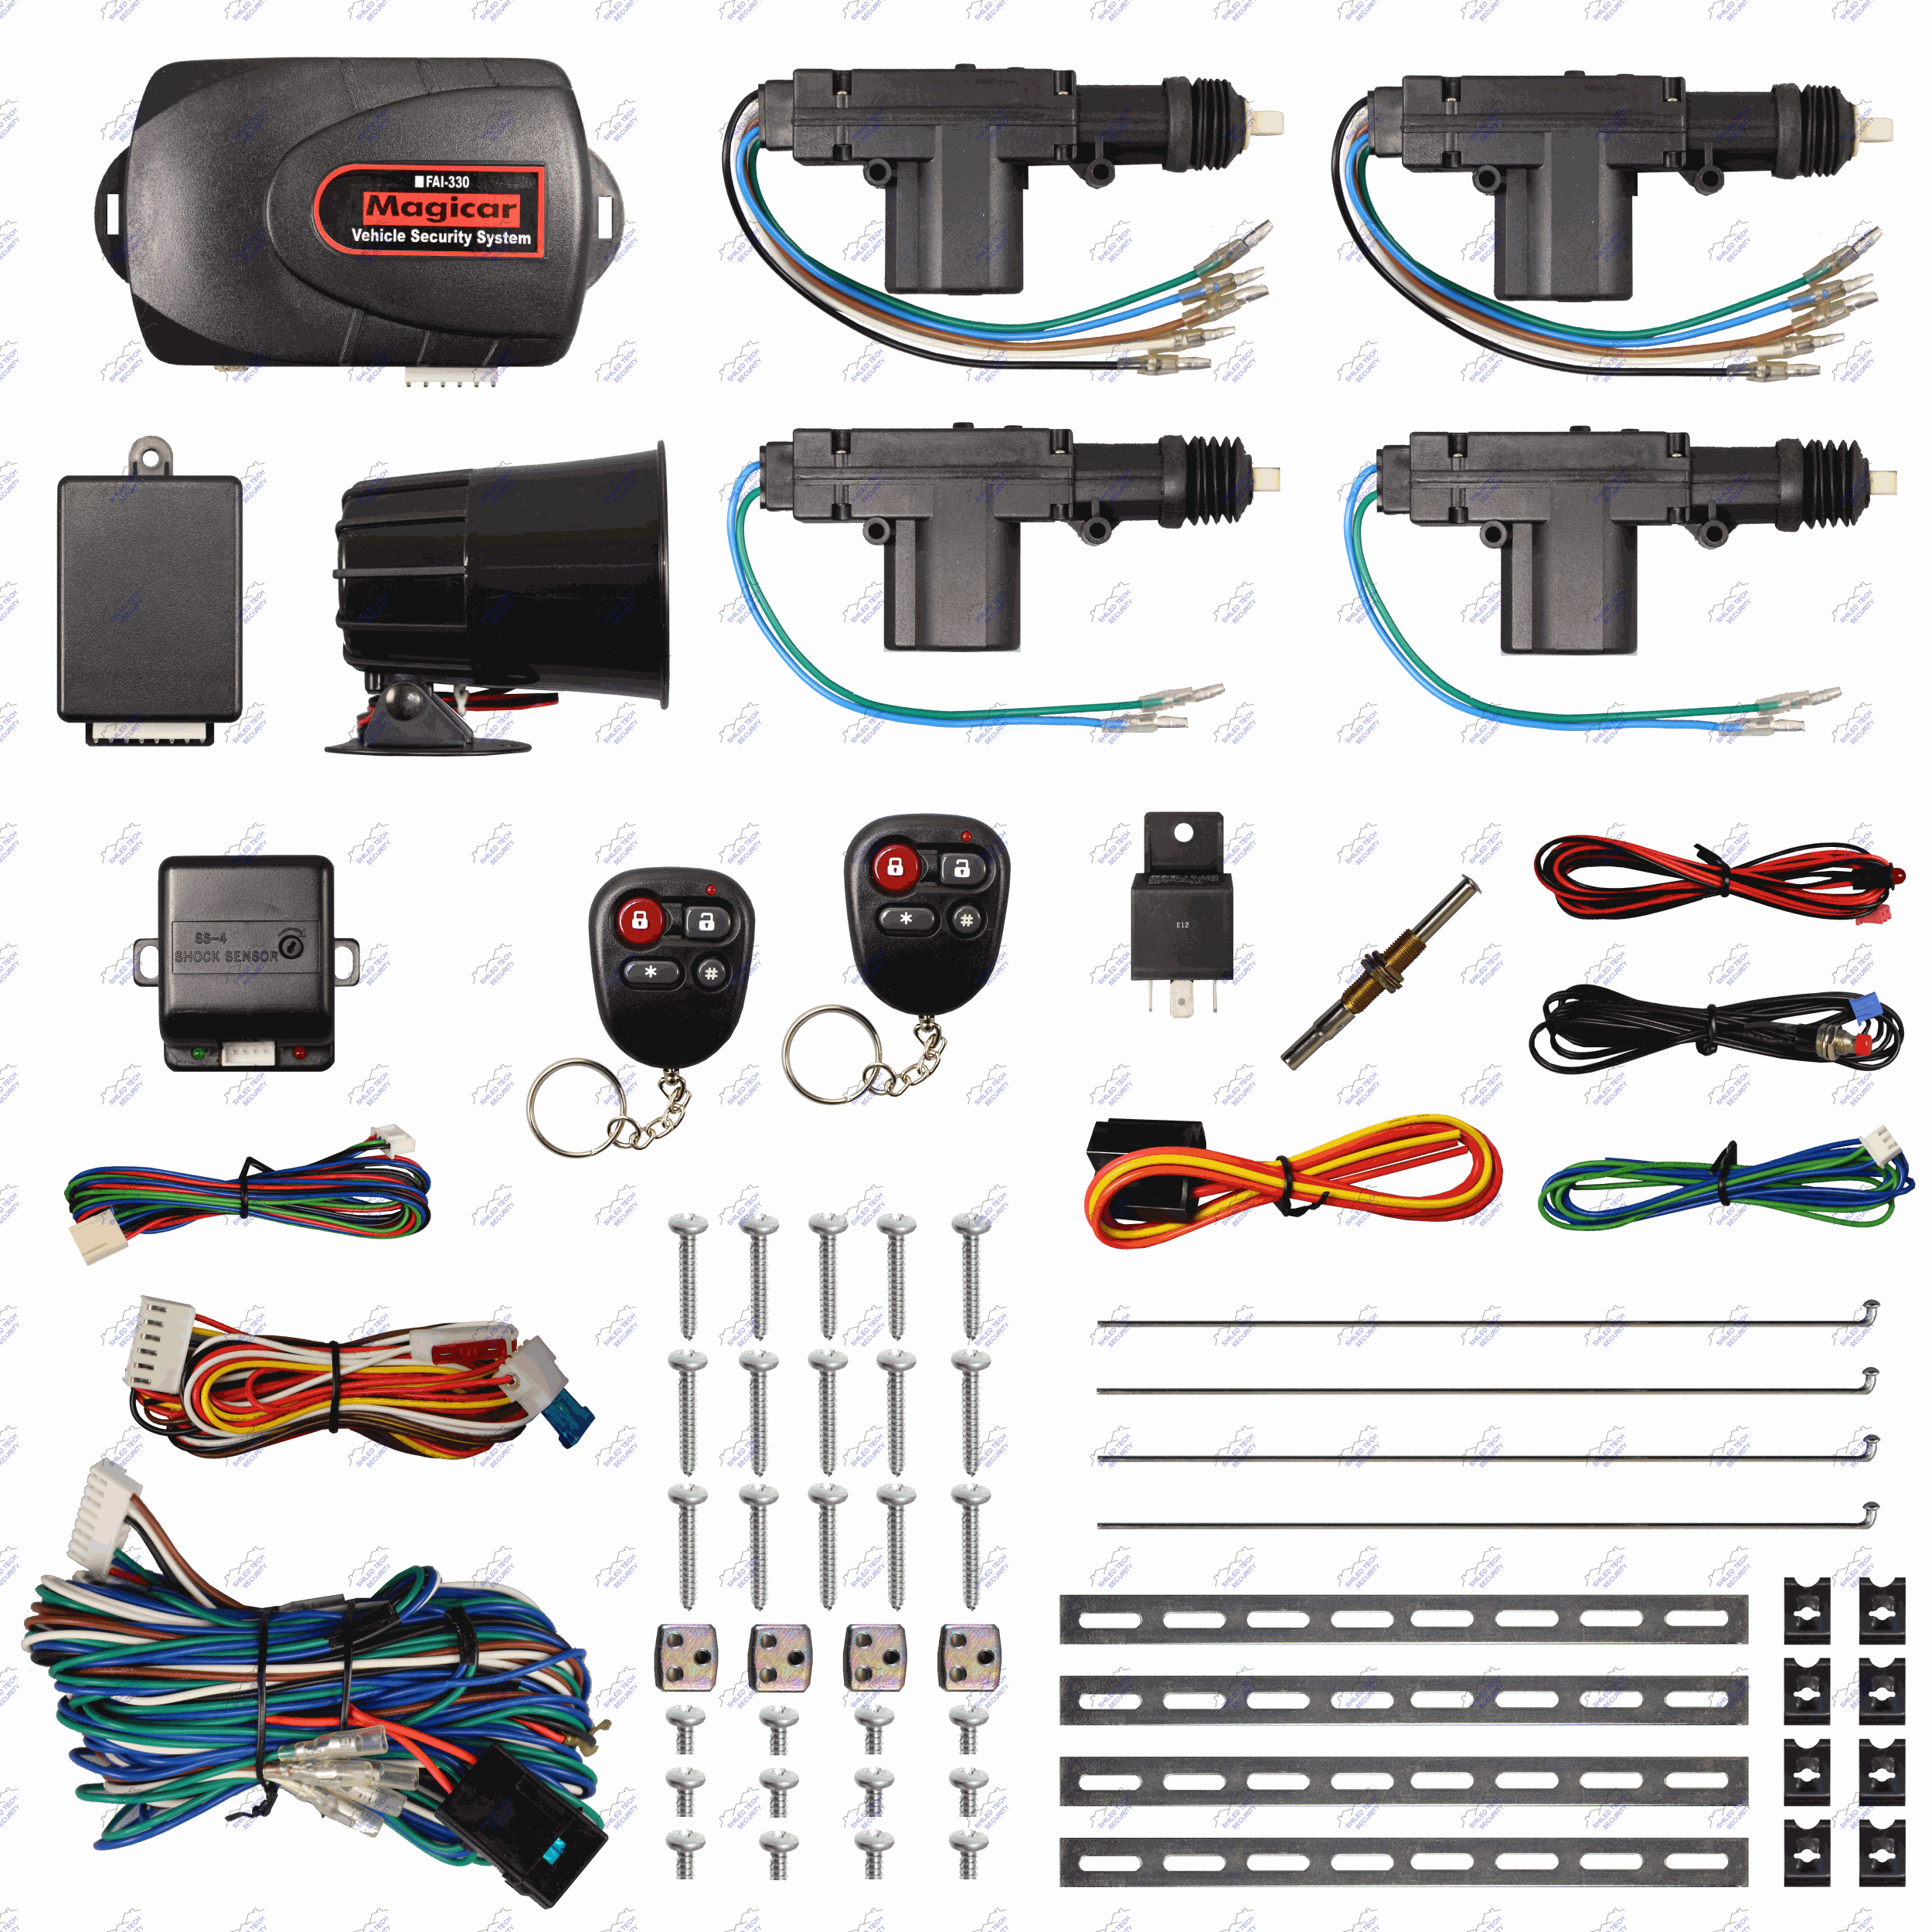 fai 330 586 main picture2 x2500 remote car alarm keyless entry security 4 door power lock  at crackthecode.co